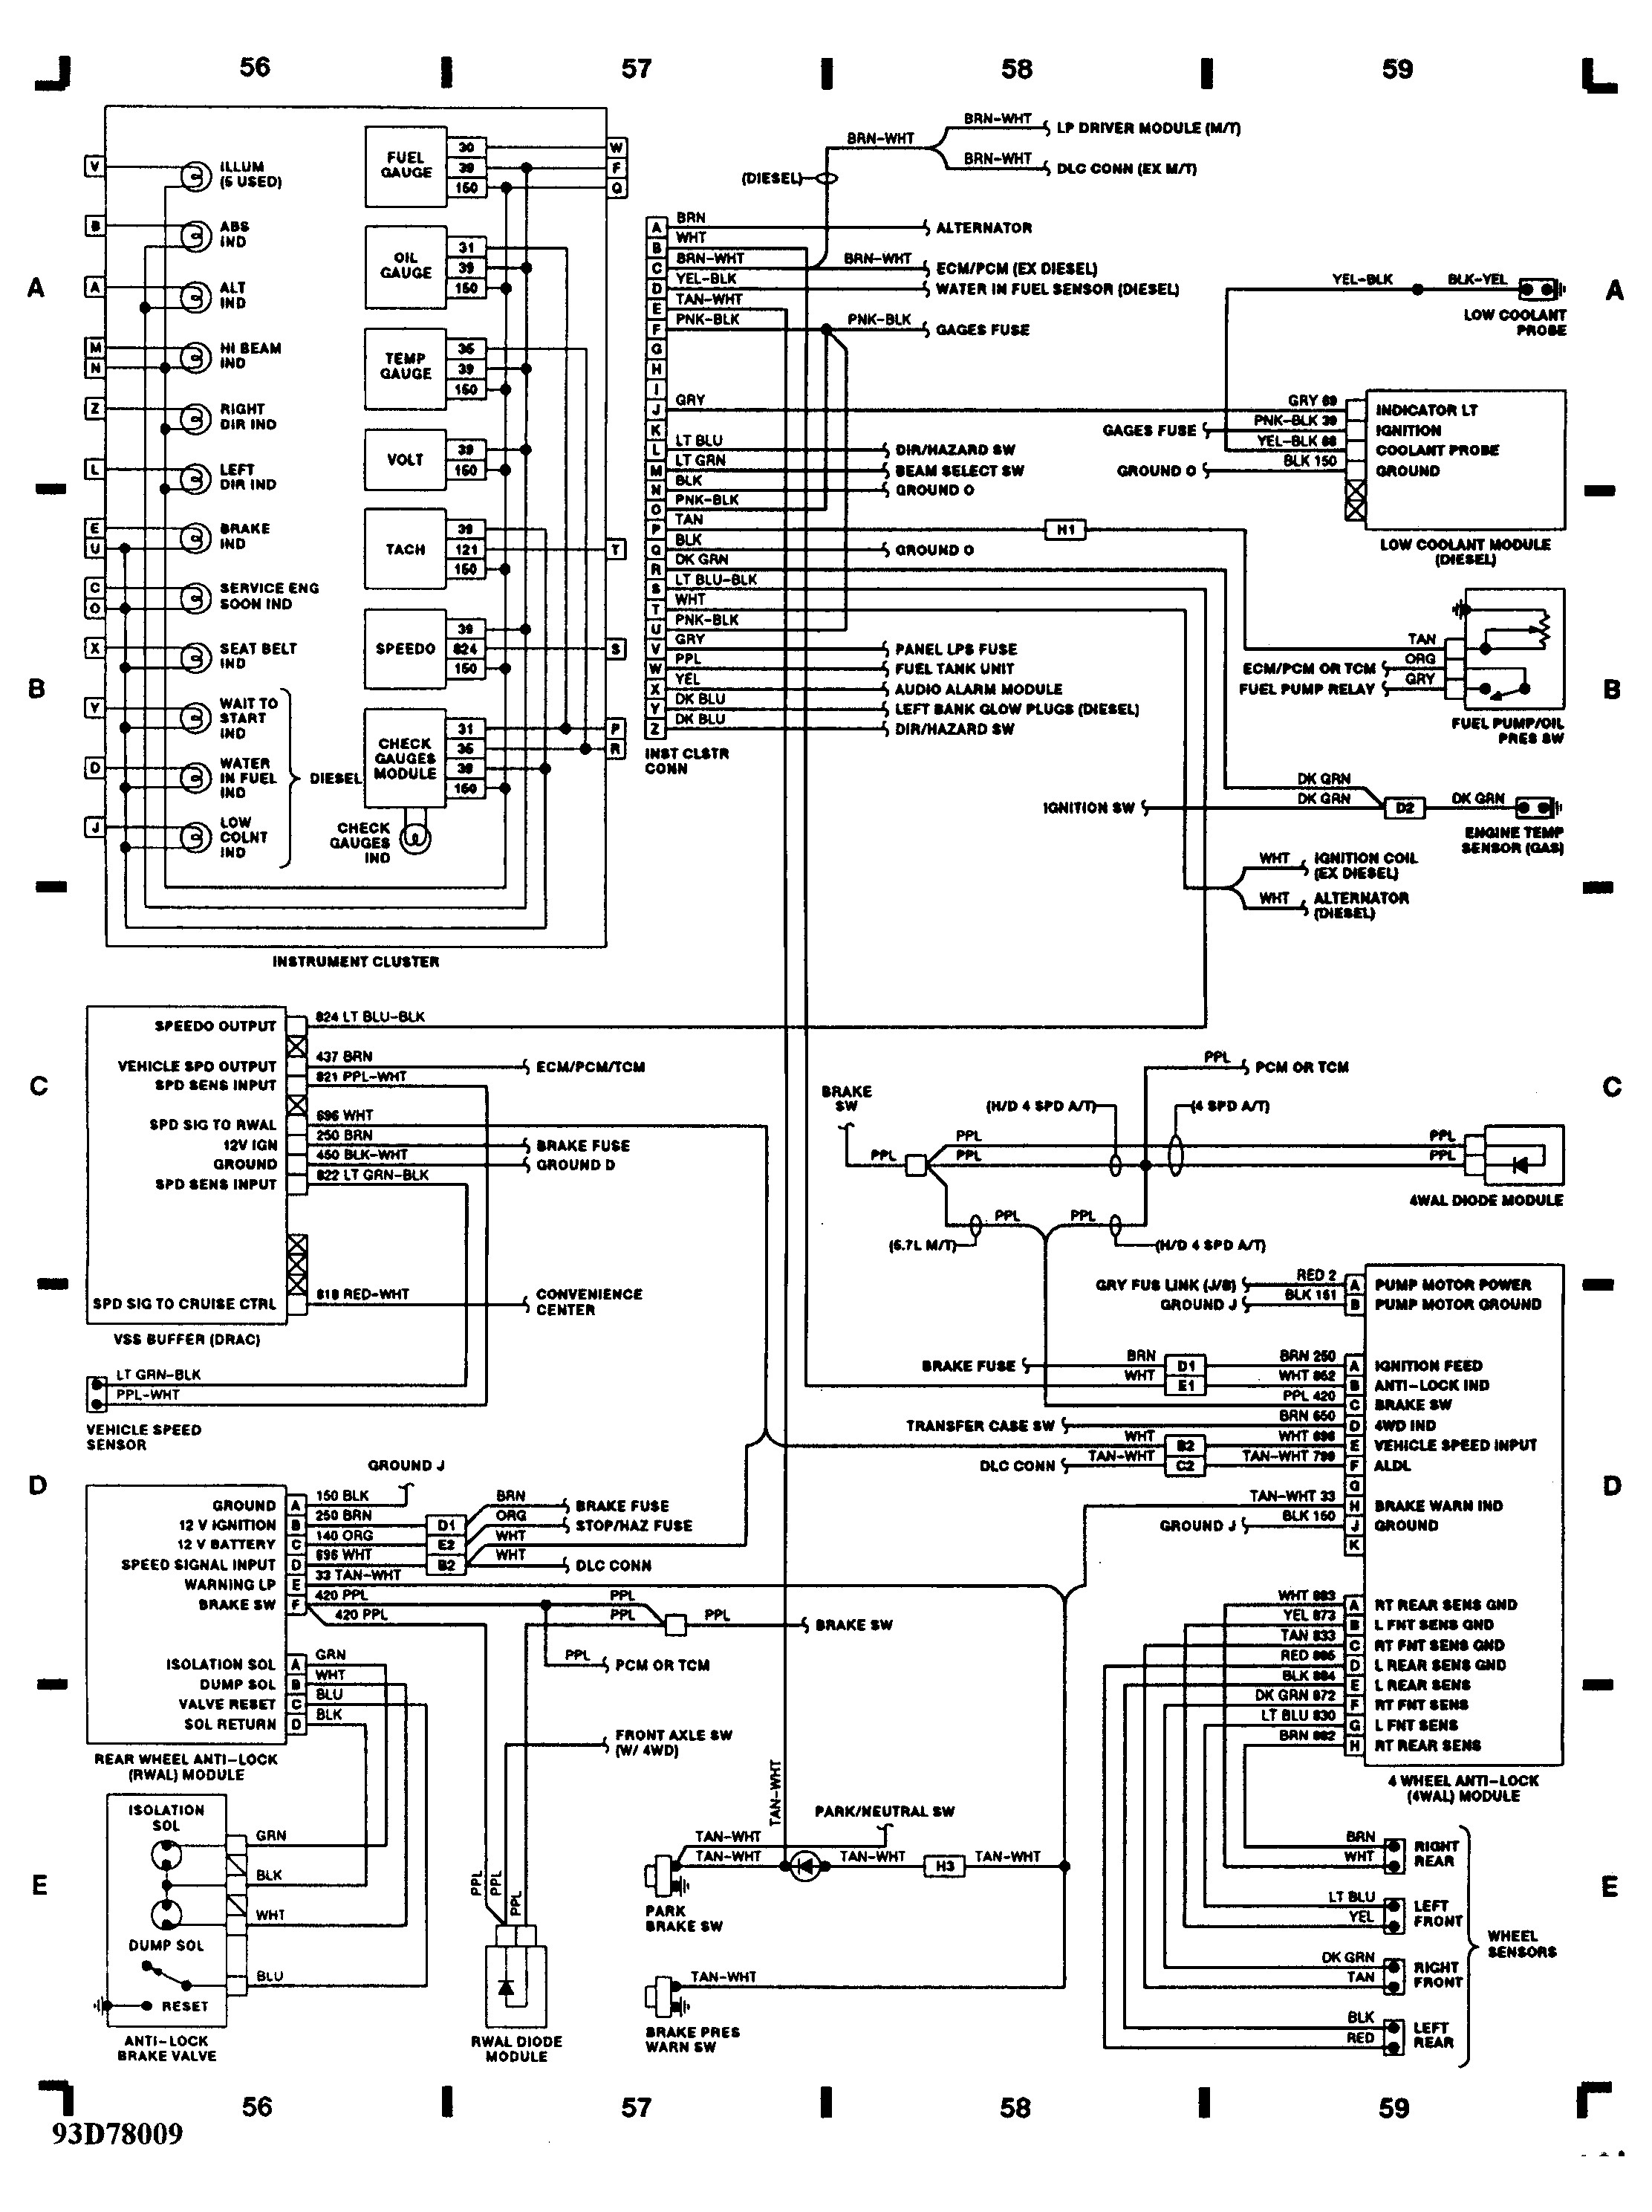 2000 Saturn Wiring Diagrams Free Download Diagram Schematic ... on headlight switch wiring diagram, 97 s10 ignition switch diagram, s10 electrical diagram, 88 s10 engine, 88 s10 air cleaner, 88 s10 suspension, chevrolet s10 engine diagram, 88 s10 fuel gauge, 88 s10 frame, 88 s10 seats, 88 s10 parts, 88 s10 radiator, 88 s10 wheels, 88 s10 air conditioning,